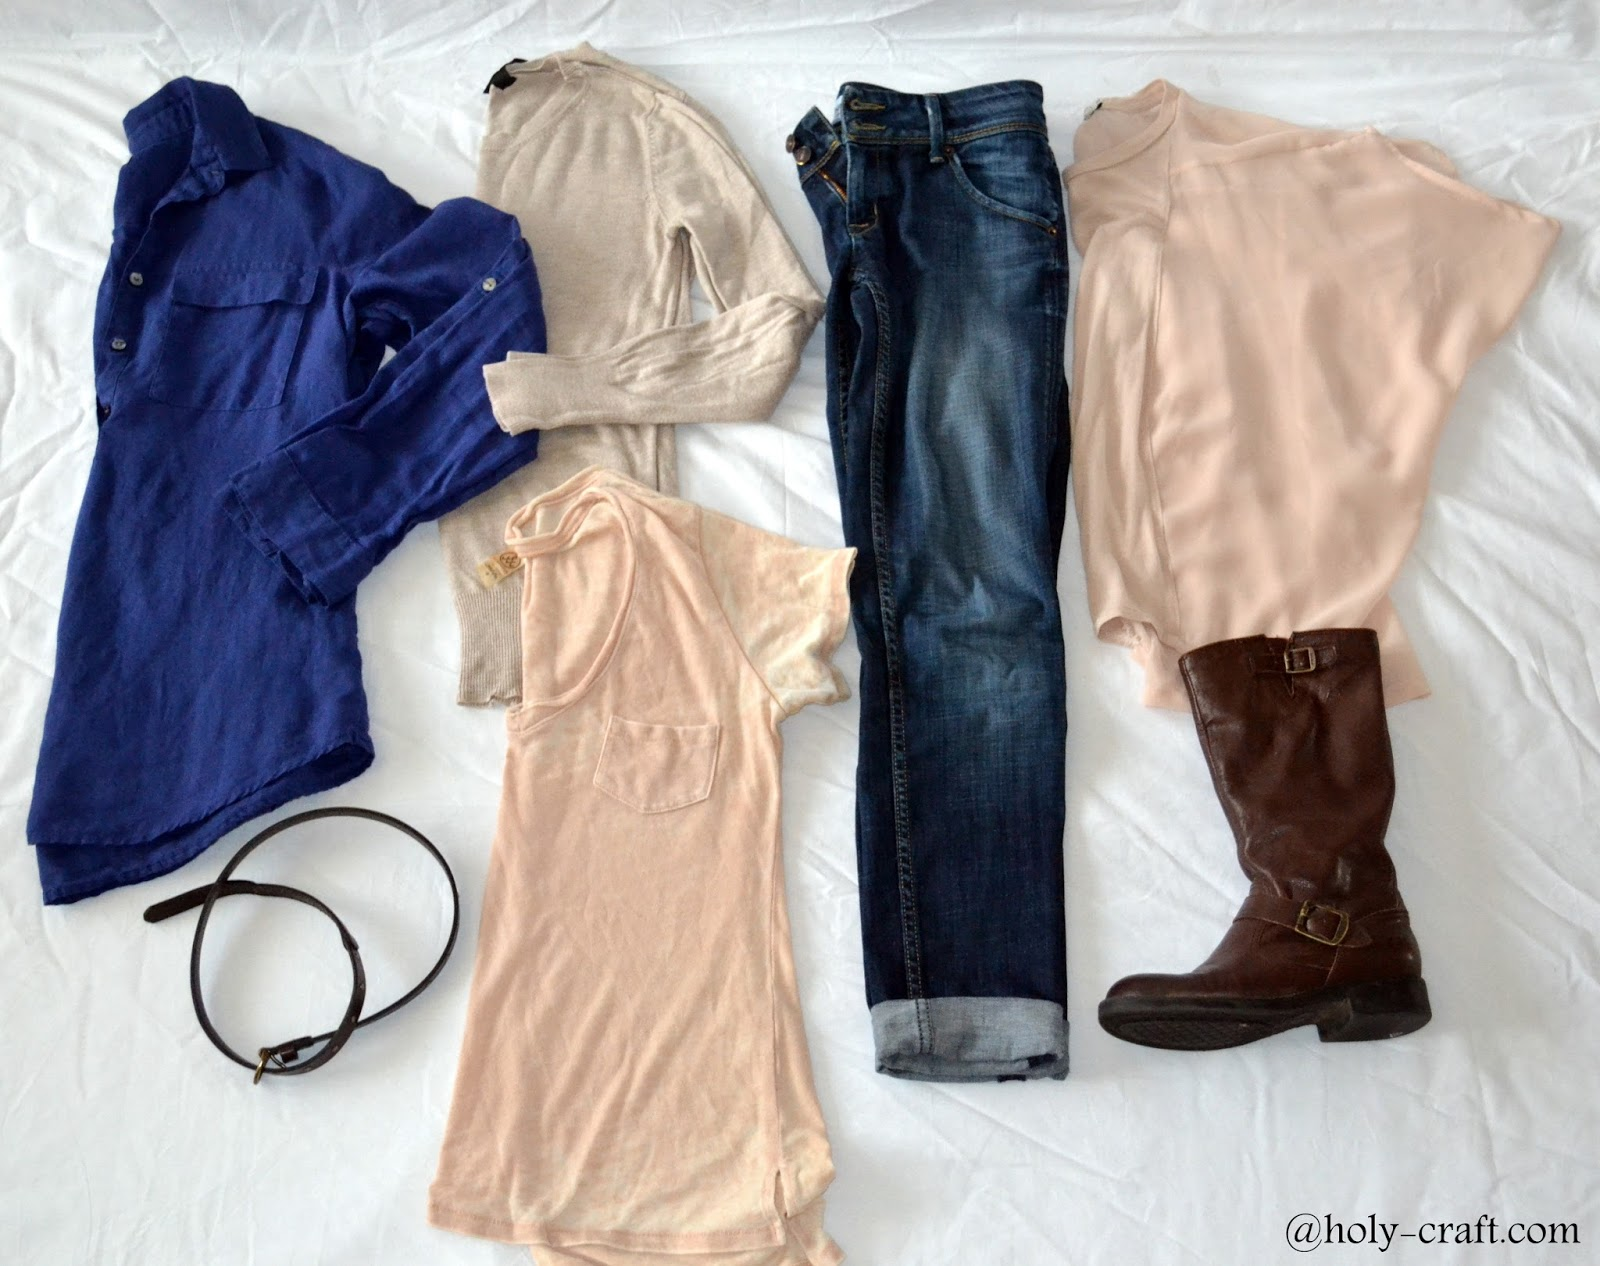 a006245cdd neutral clothing in my closet that can be worn with skinny jeans and boots